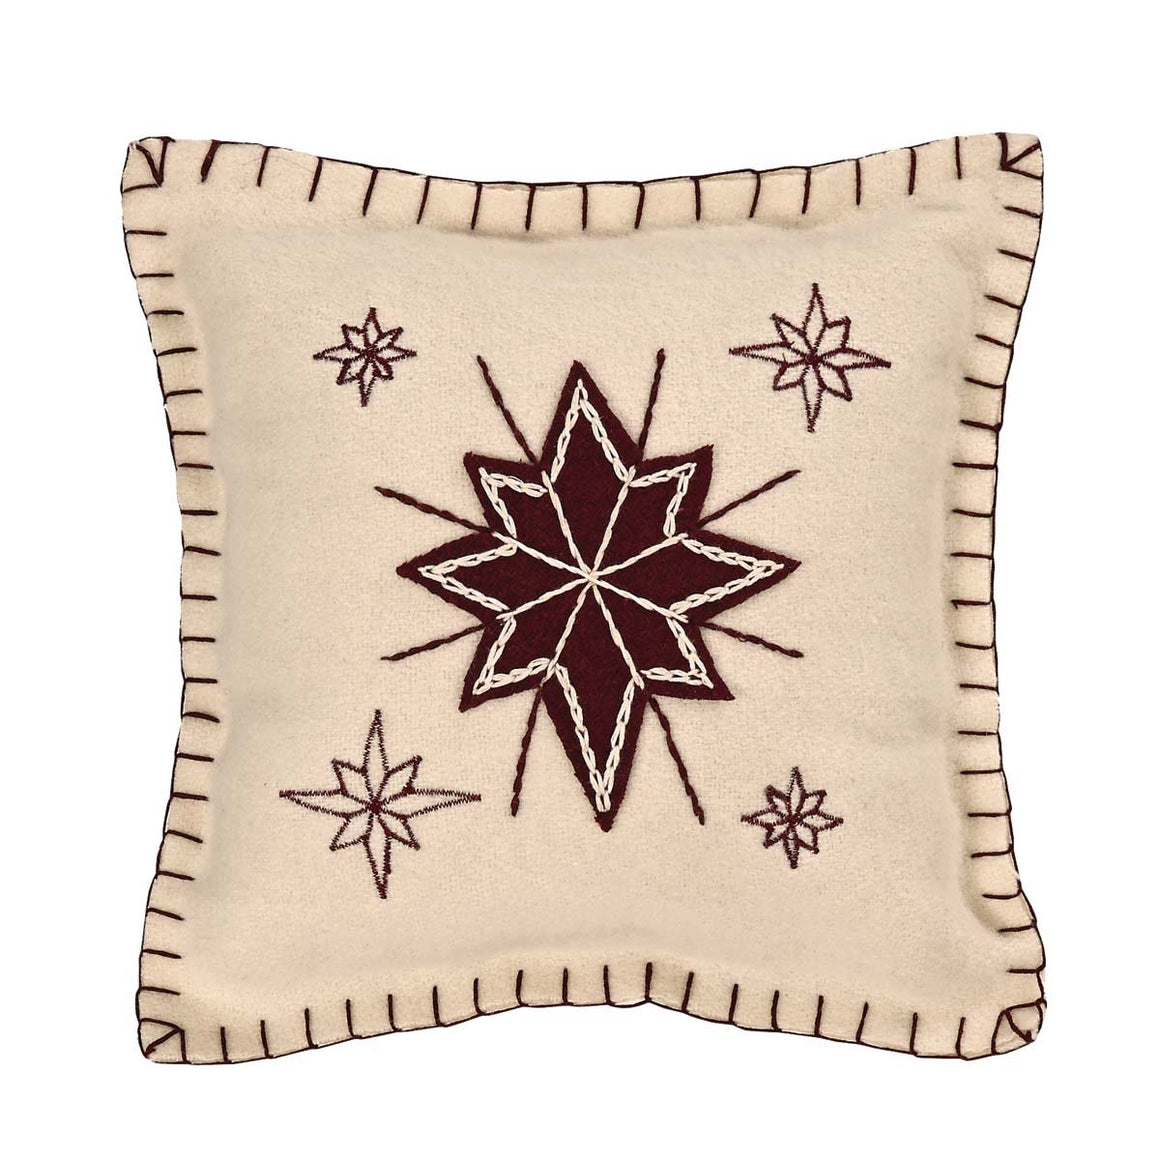 North Star Pillow 10x10